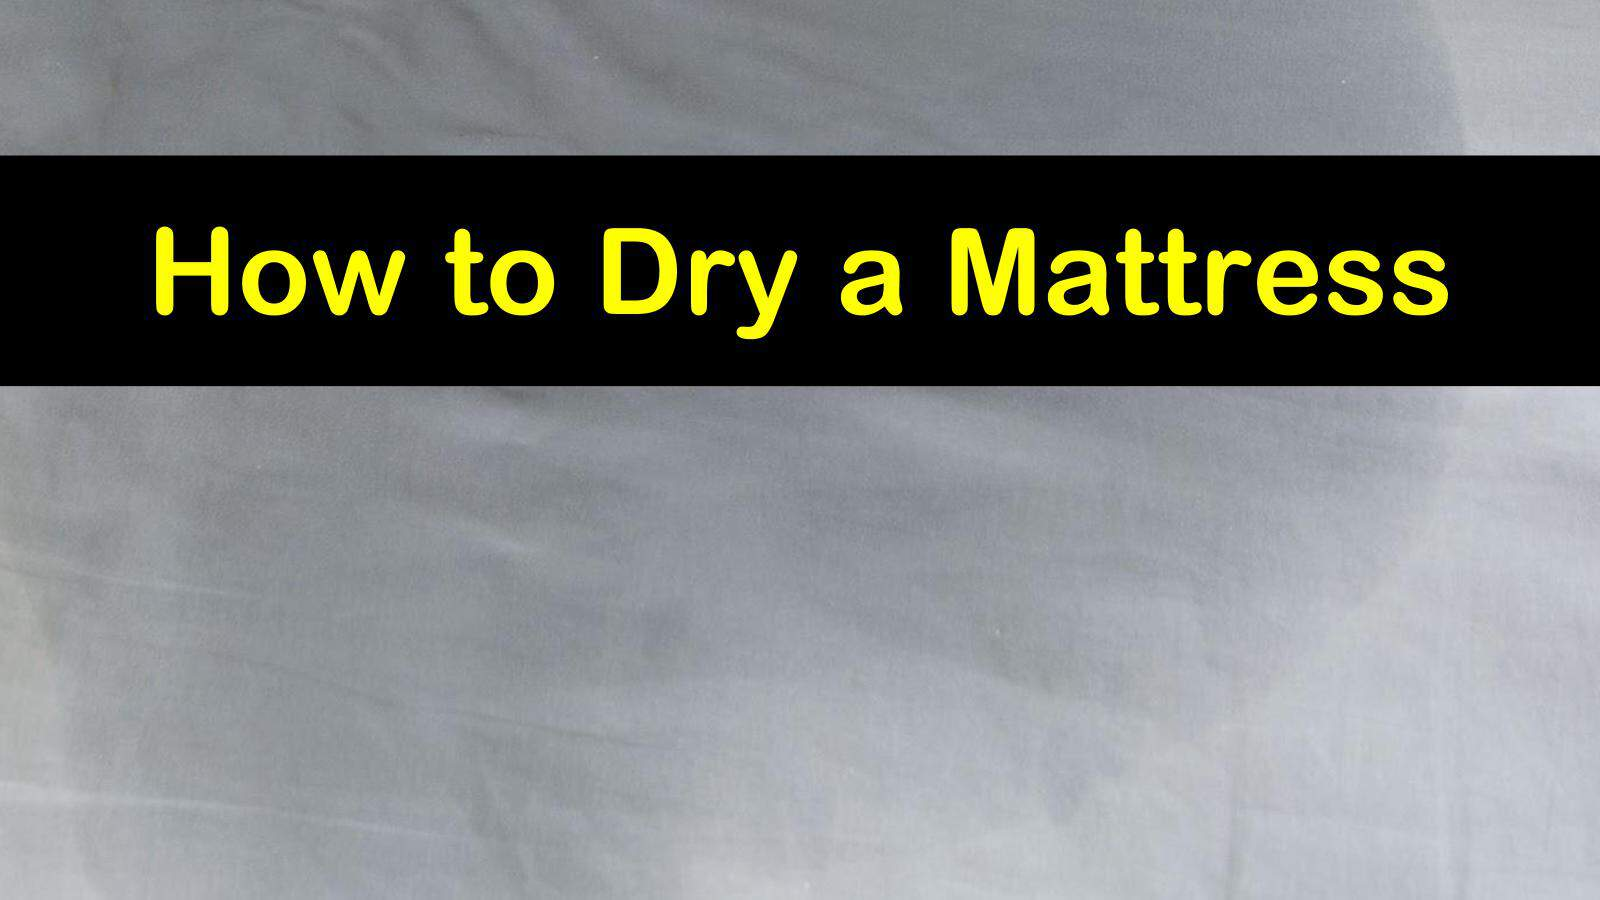 how to dry a mattress titleimg1